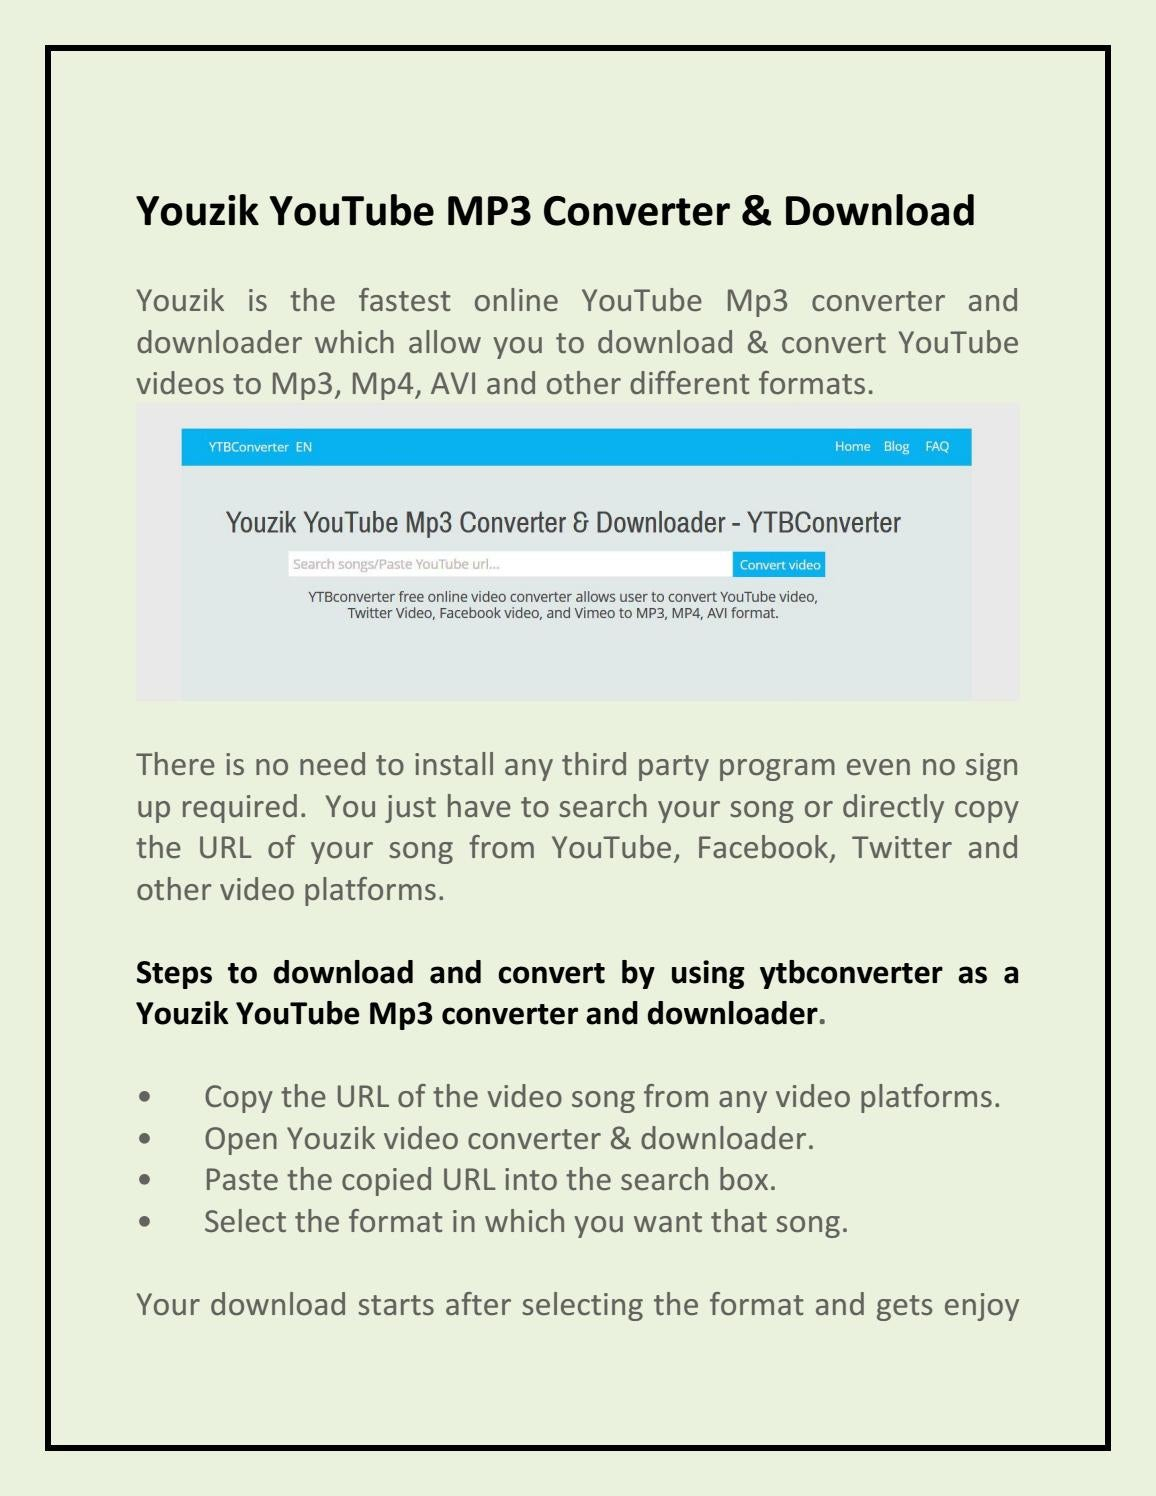 Youzik YouTube mp3 converter & downloader by akshaytrank - issuu